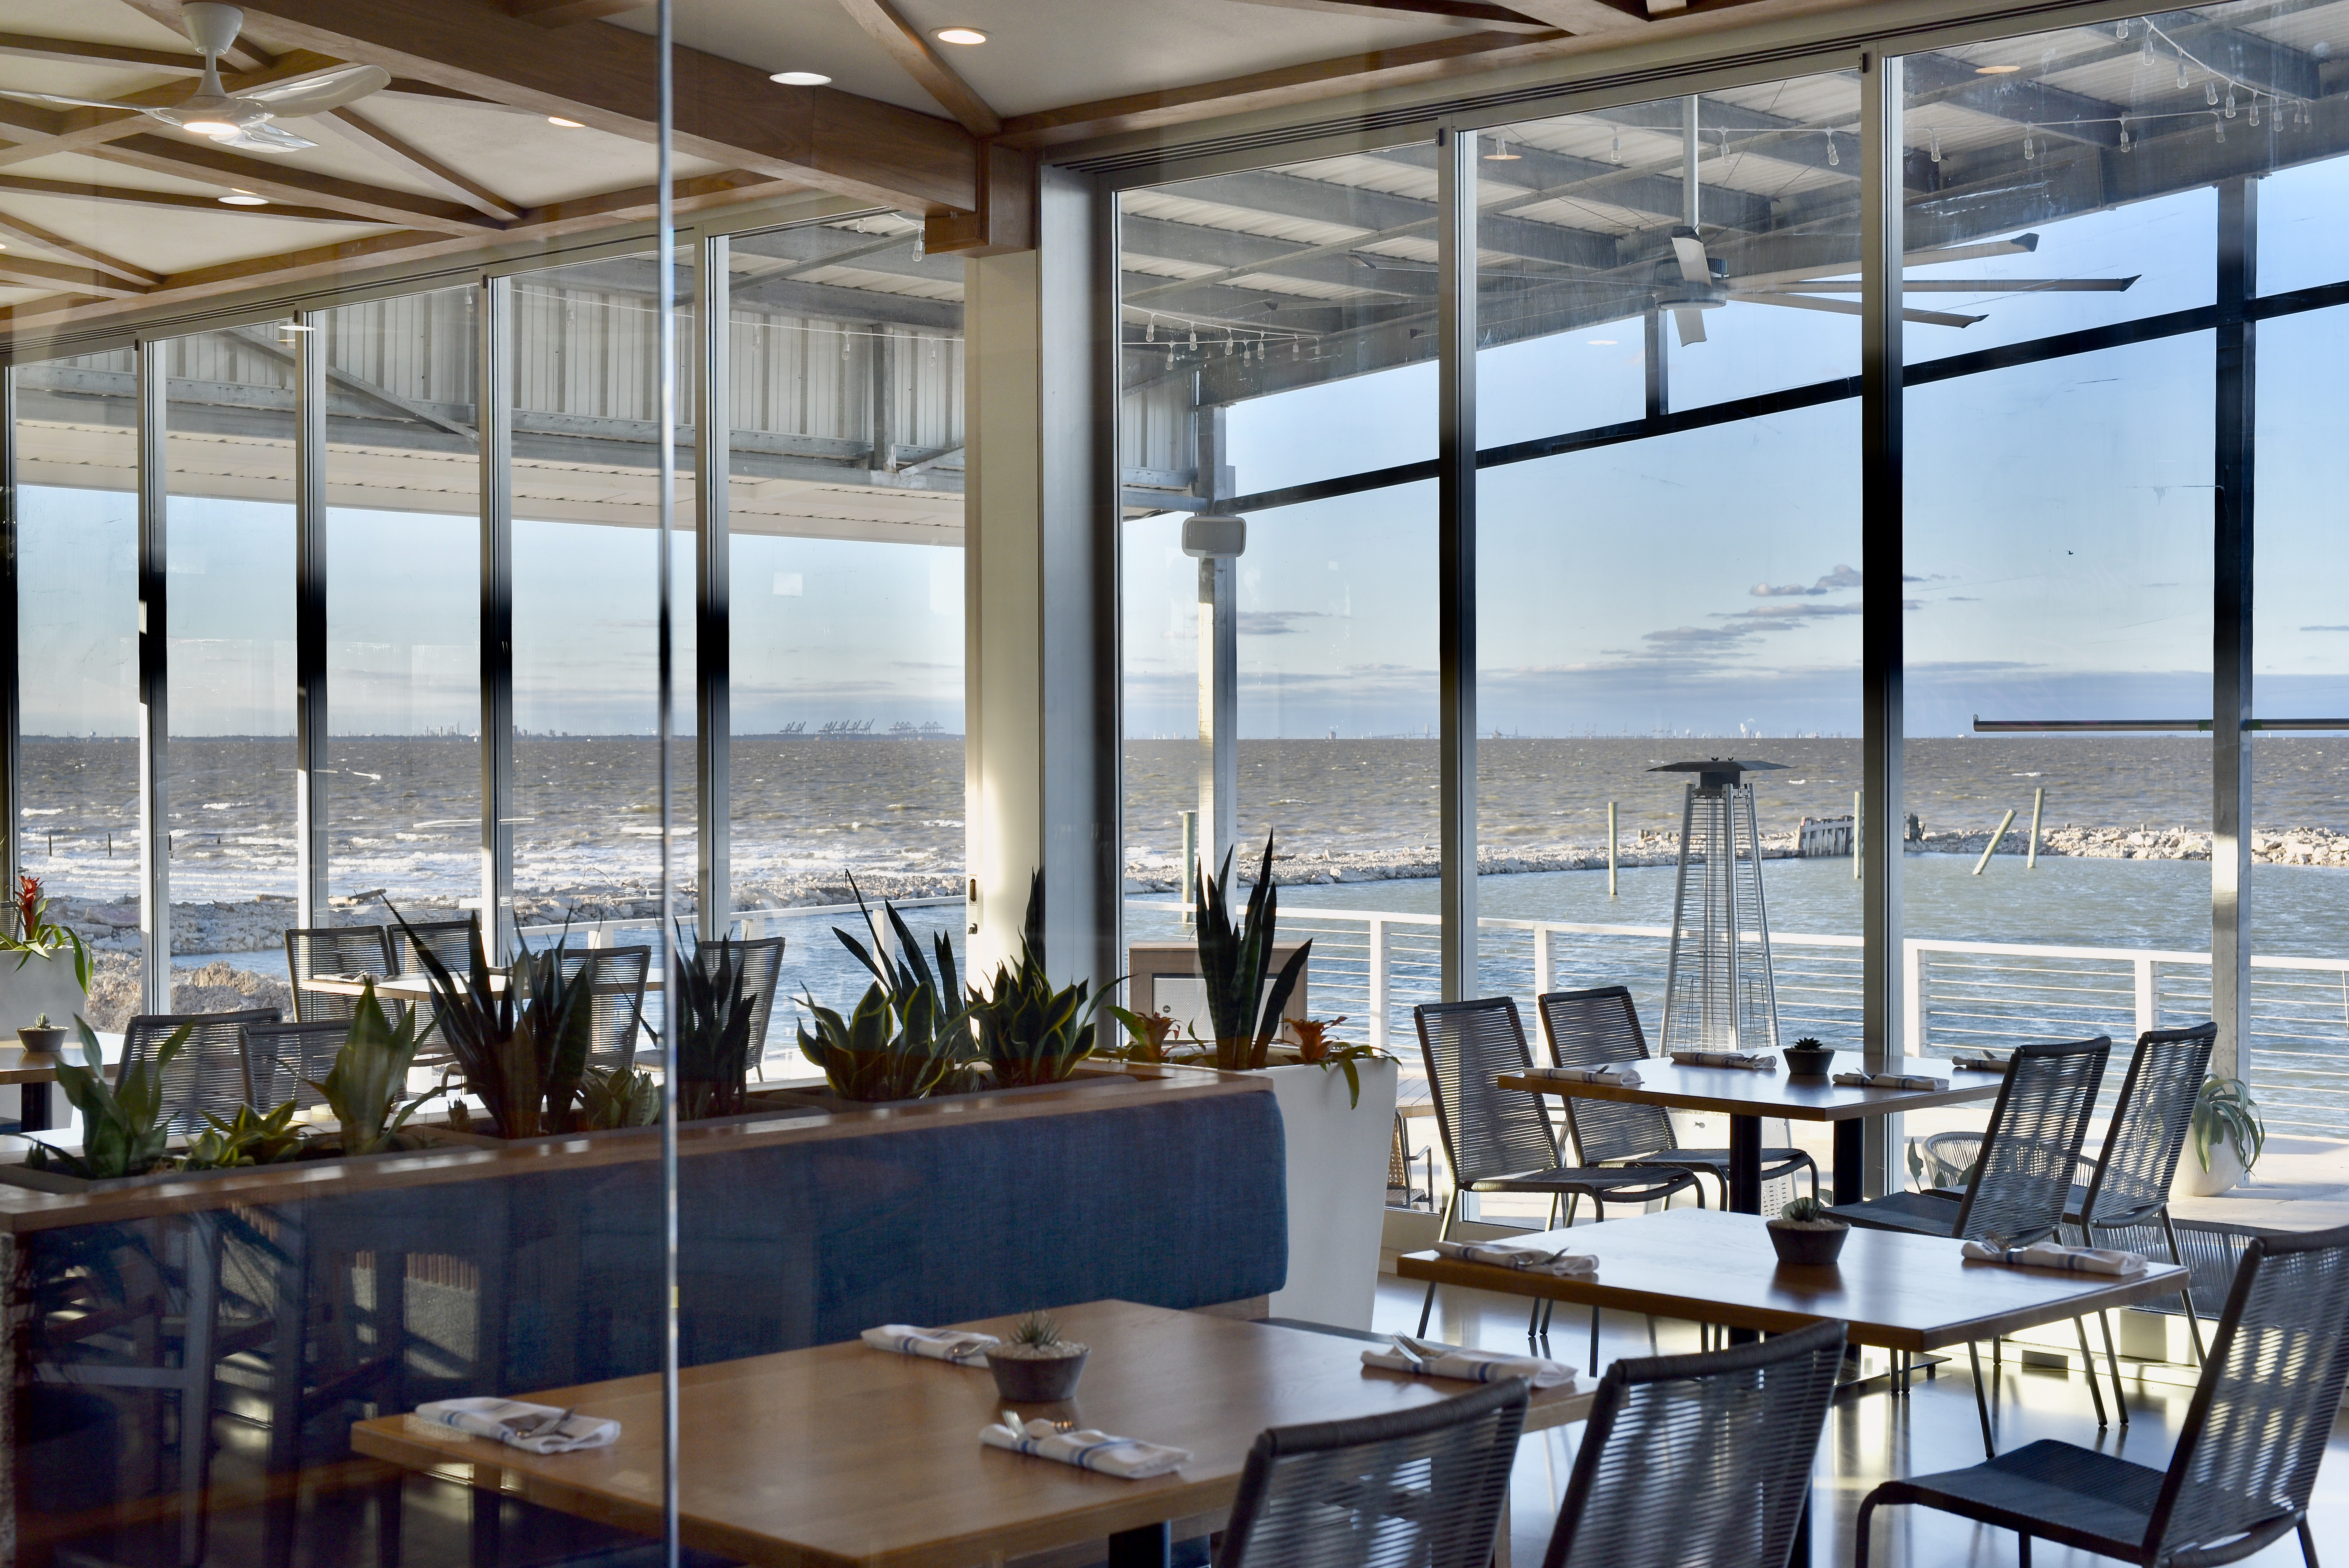 The interior of Pier 6 seafood, overlooking the San Leon waterfront through large windows